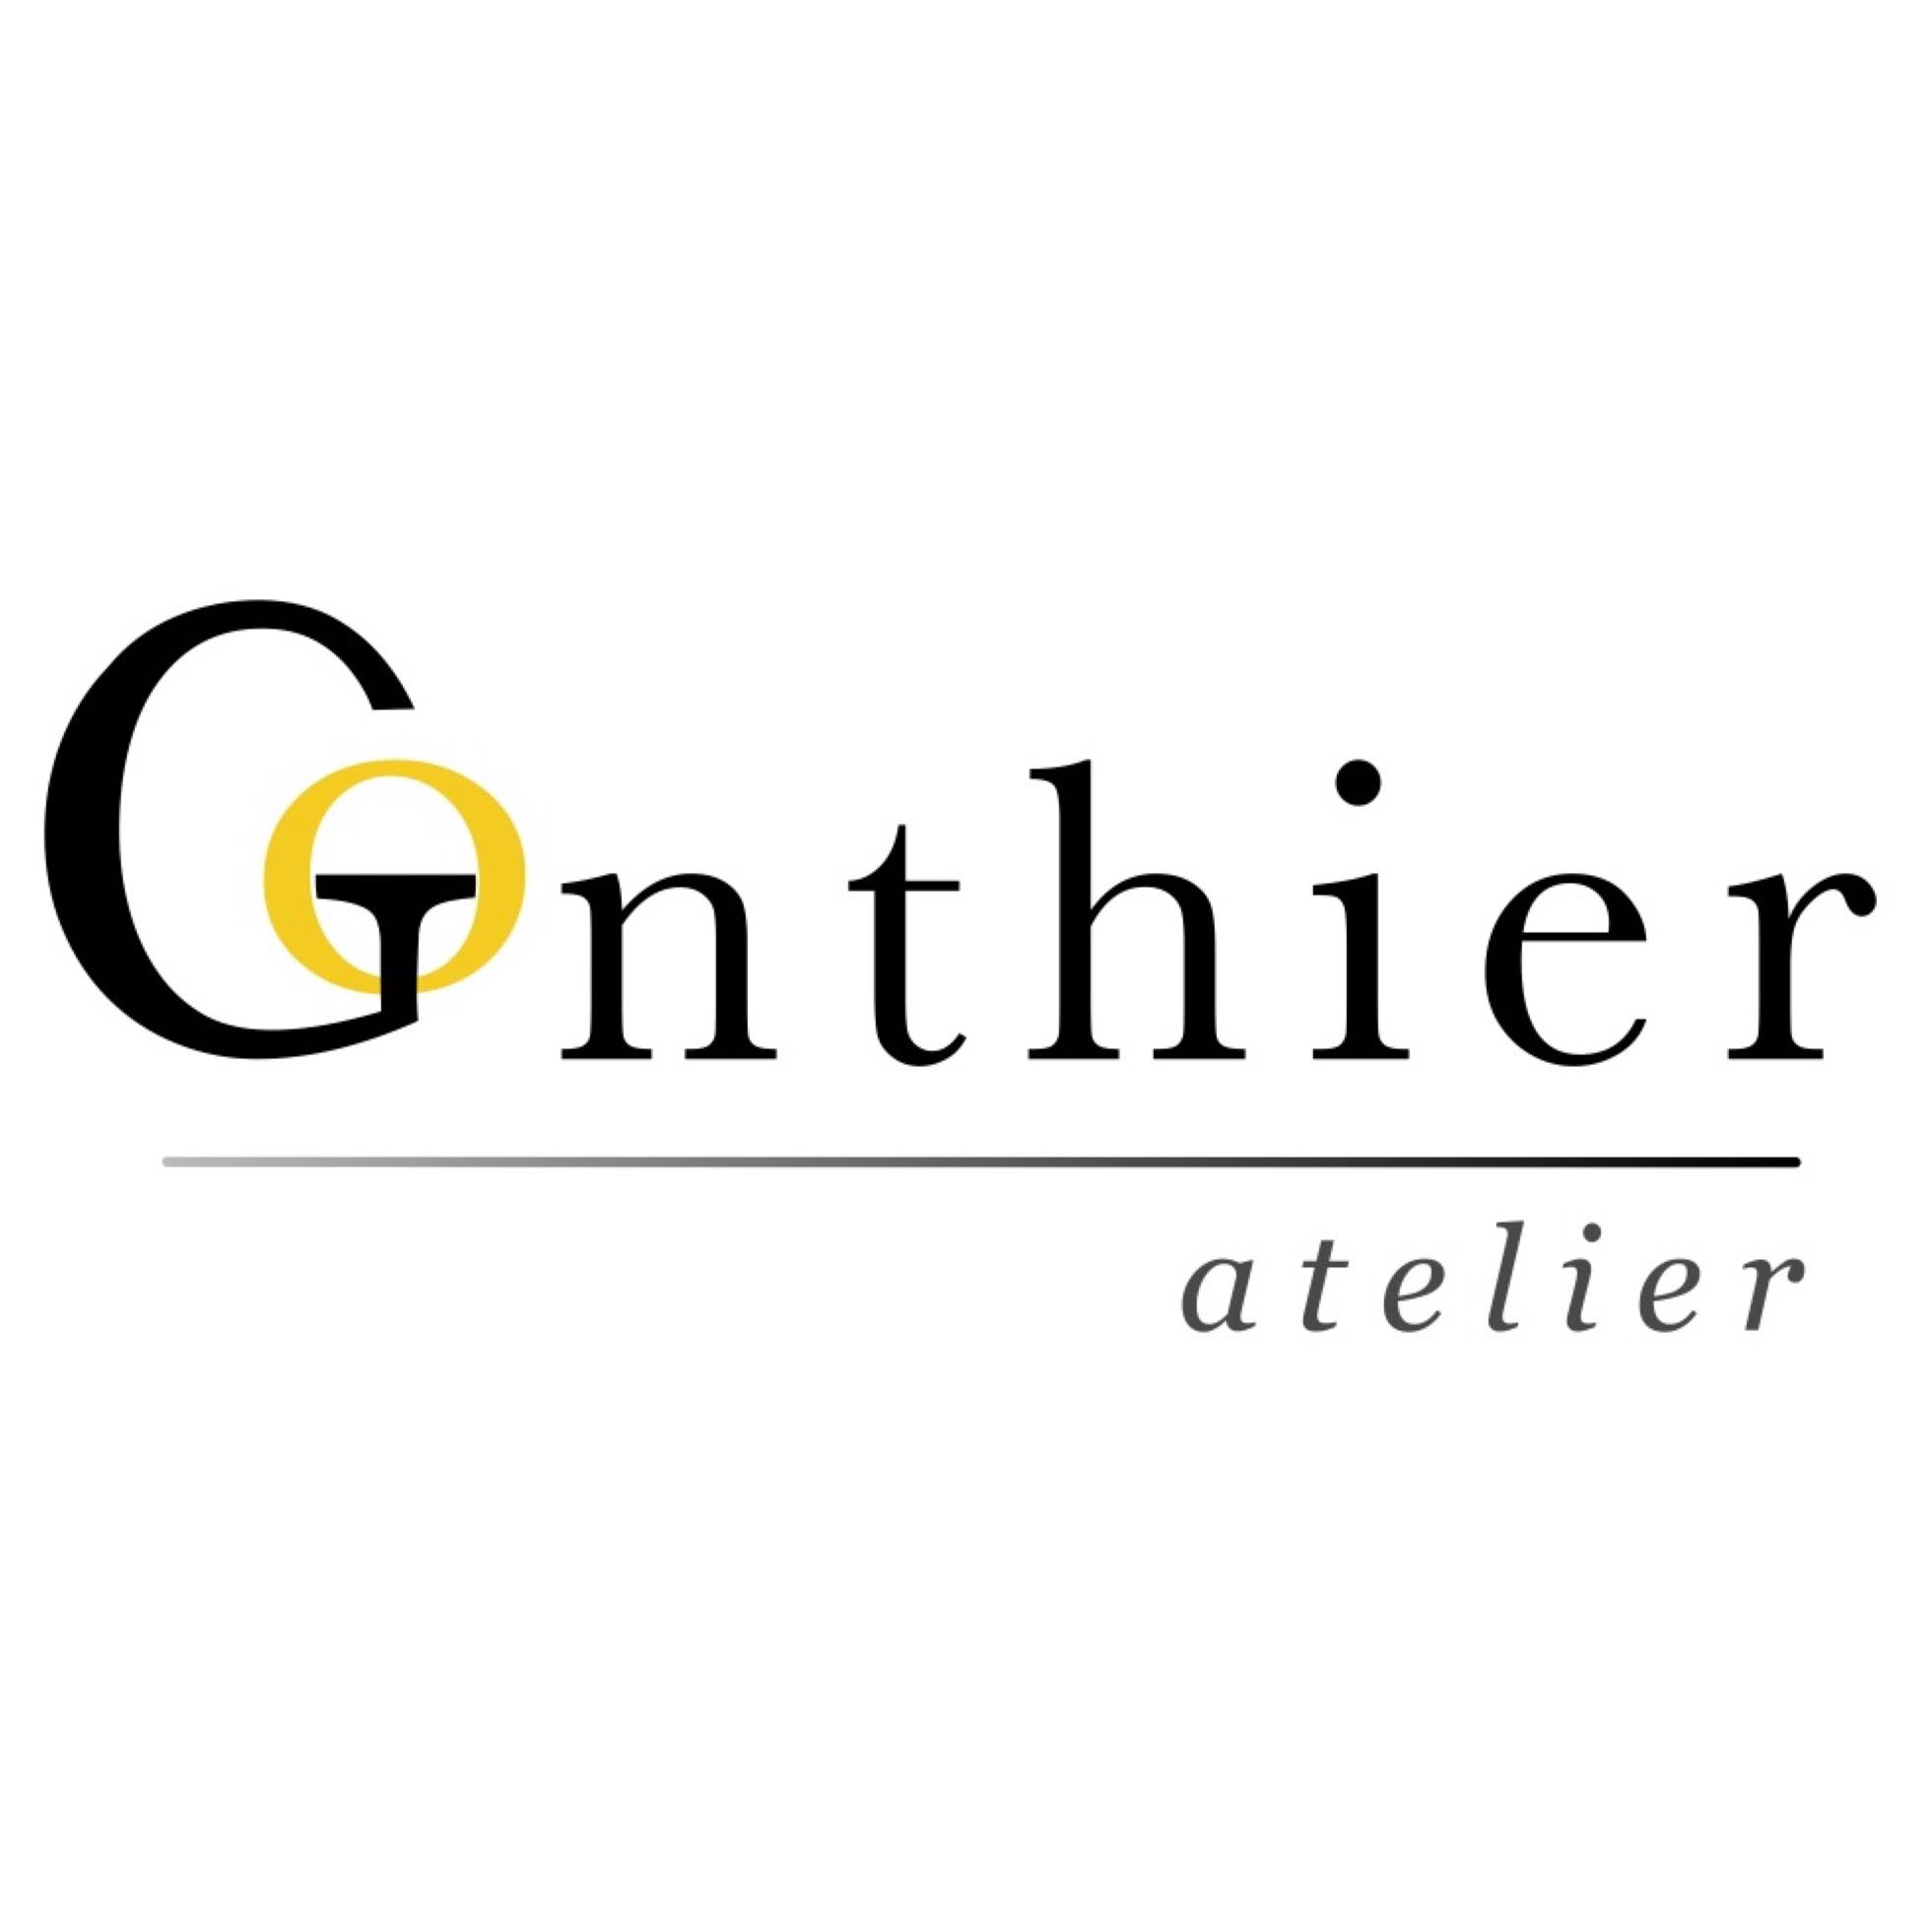 Gonthier atelier